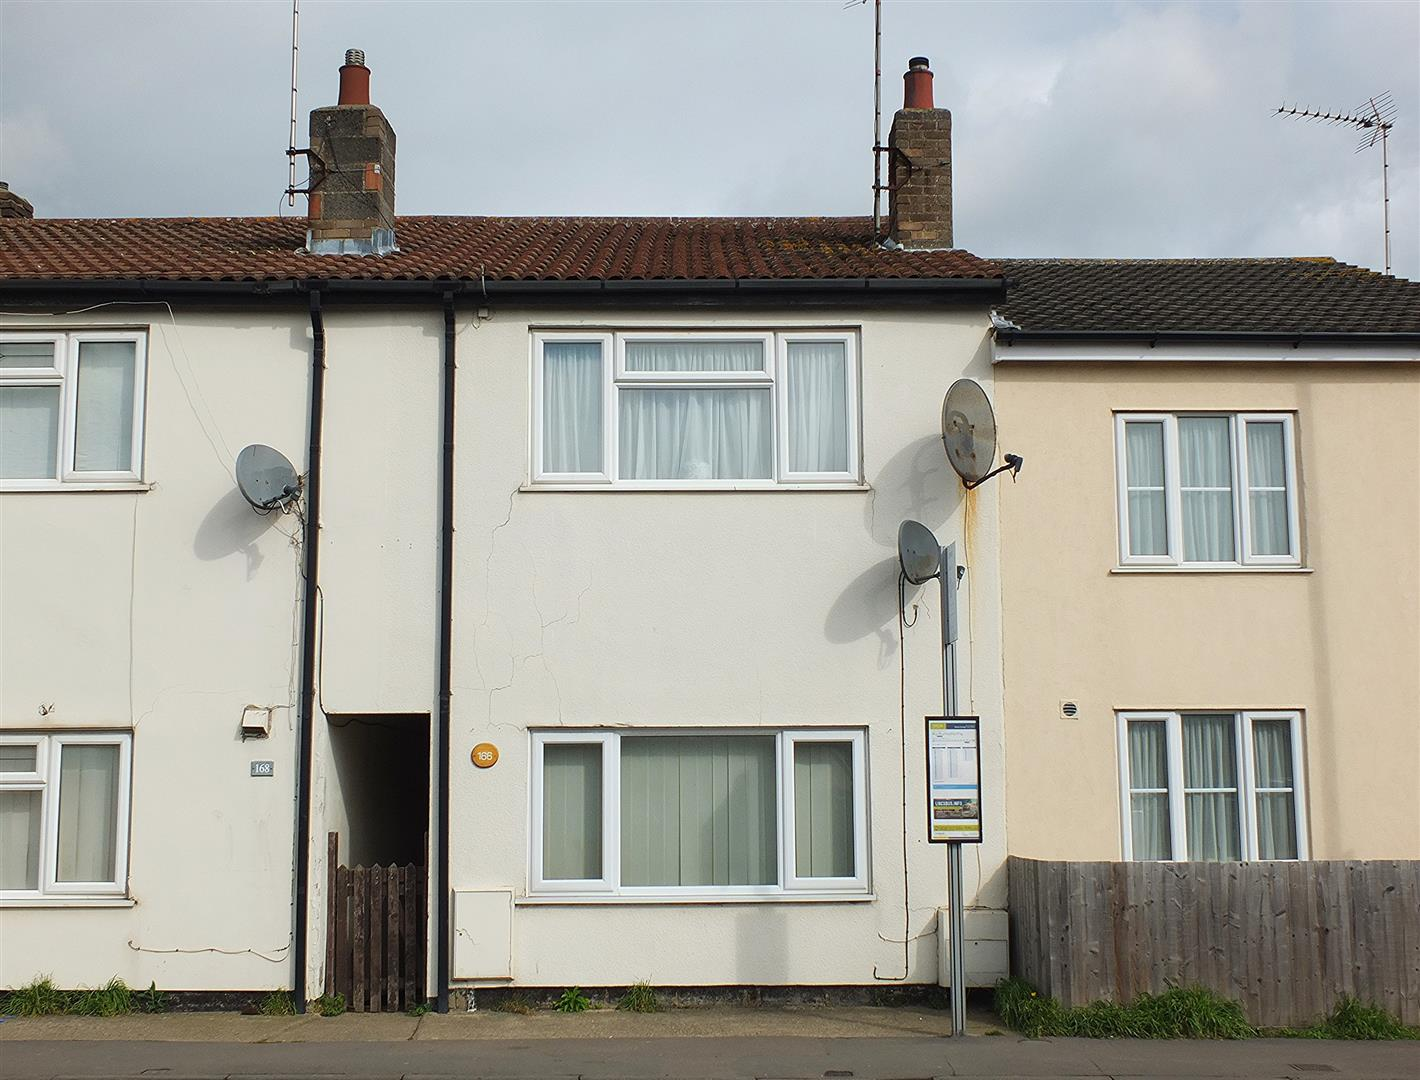 2 bed terraced house for sale in Sutton Bridge Spalding, PE12 9SF  - Property Image 1